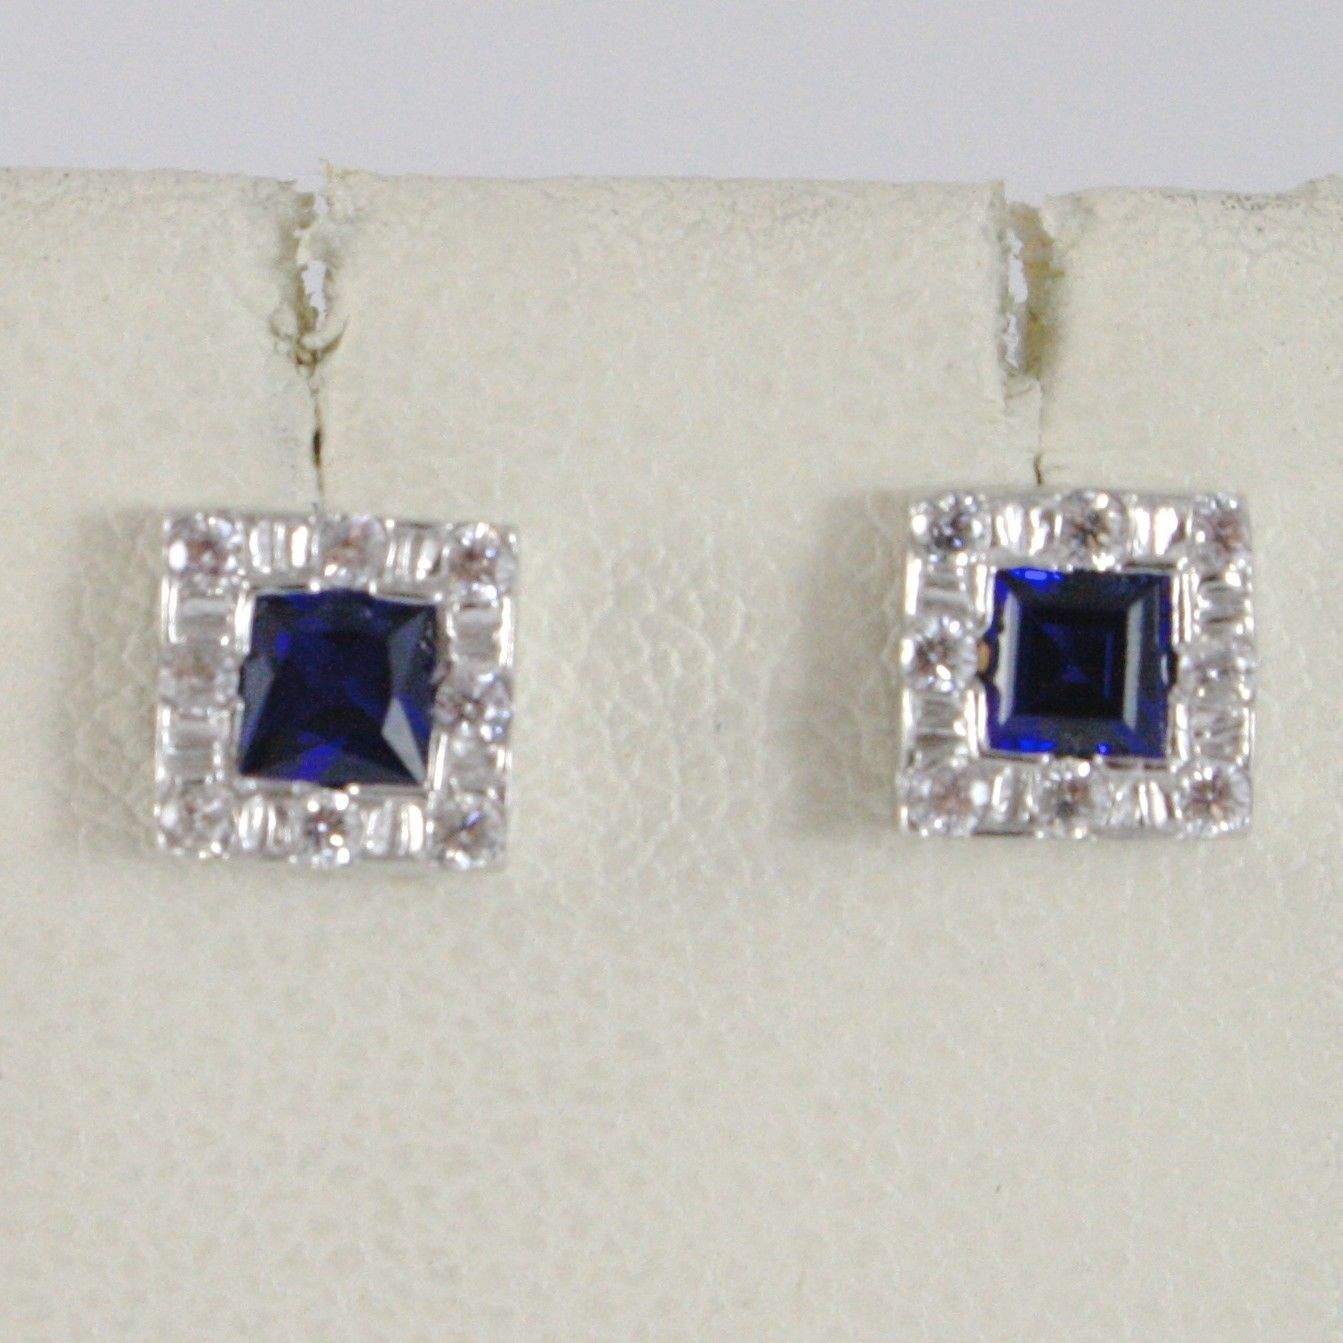 18K WHITE GOLD 6 MM SQUARE EARRINGS WITH ZIRCONIA PRINCESS BLUE